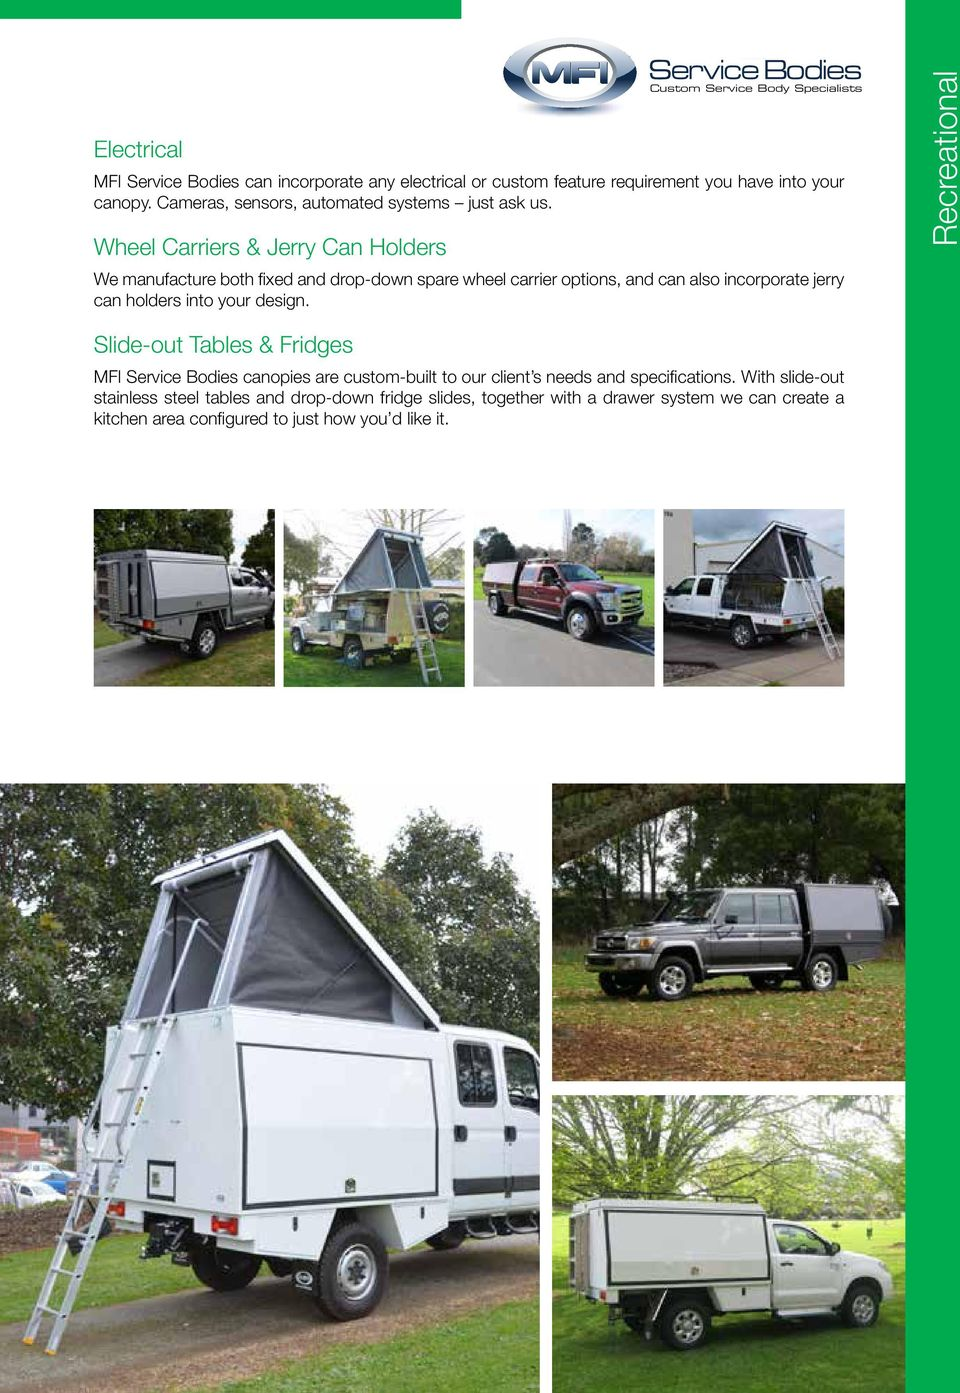 Wheel Carriers & Jerry Can Holders Custom Service Body Specialists We manufacture both fixed and drop-down spare wheel carrier options, and can also incorporate